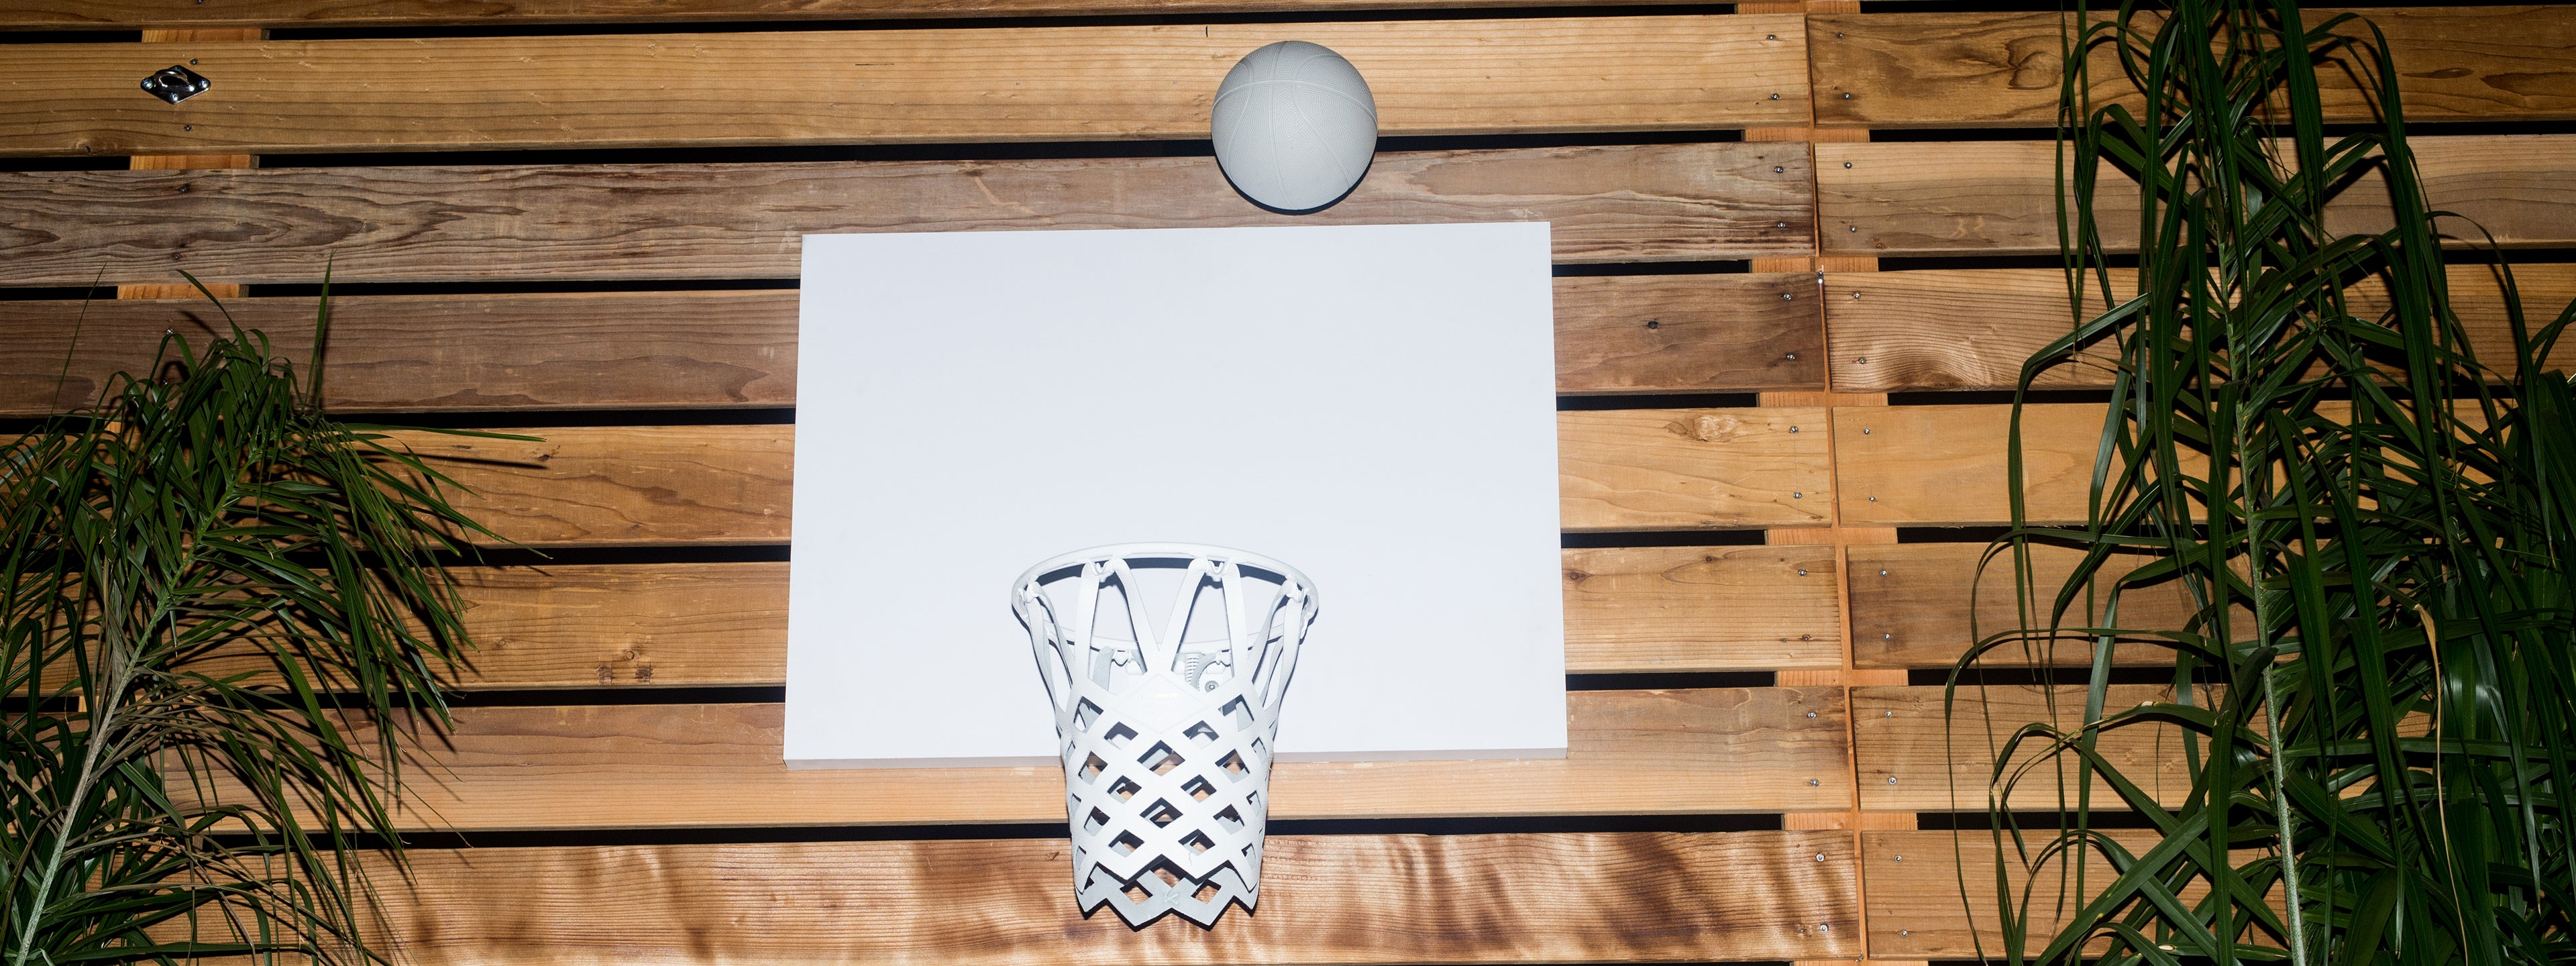 KILLSPENCER x SNARKITECTURE Collector's Edition Indoor Mini Basketball Kit